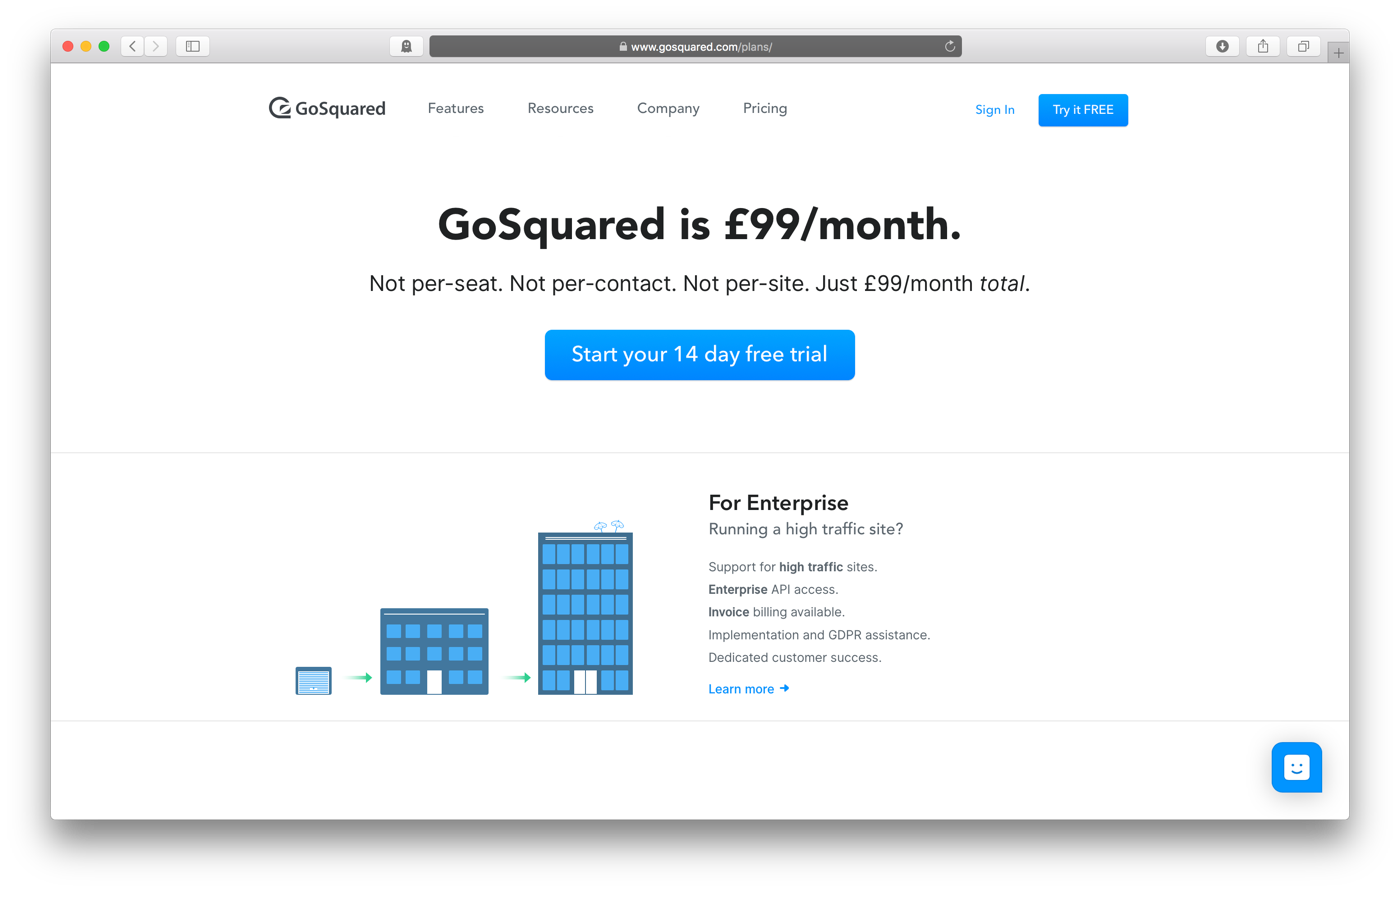 Simplified GoSquared pricing